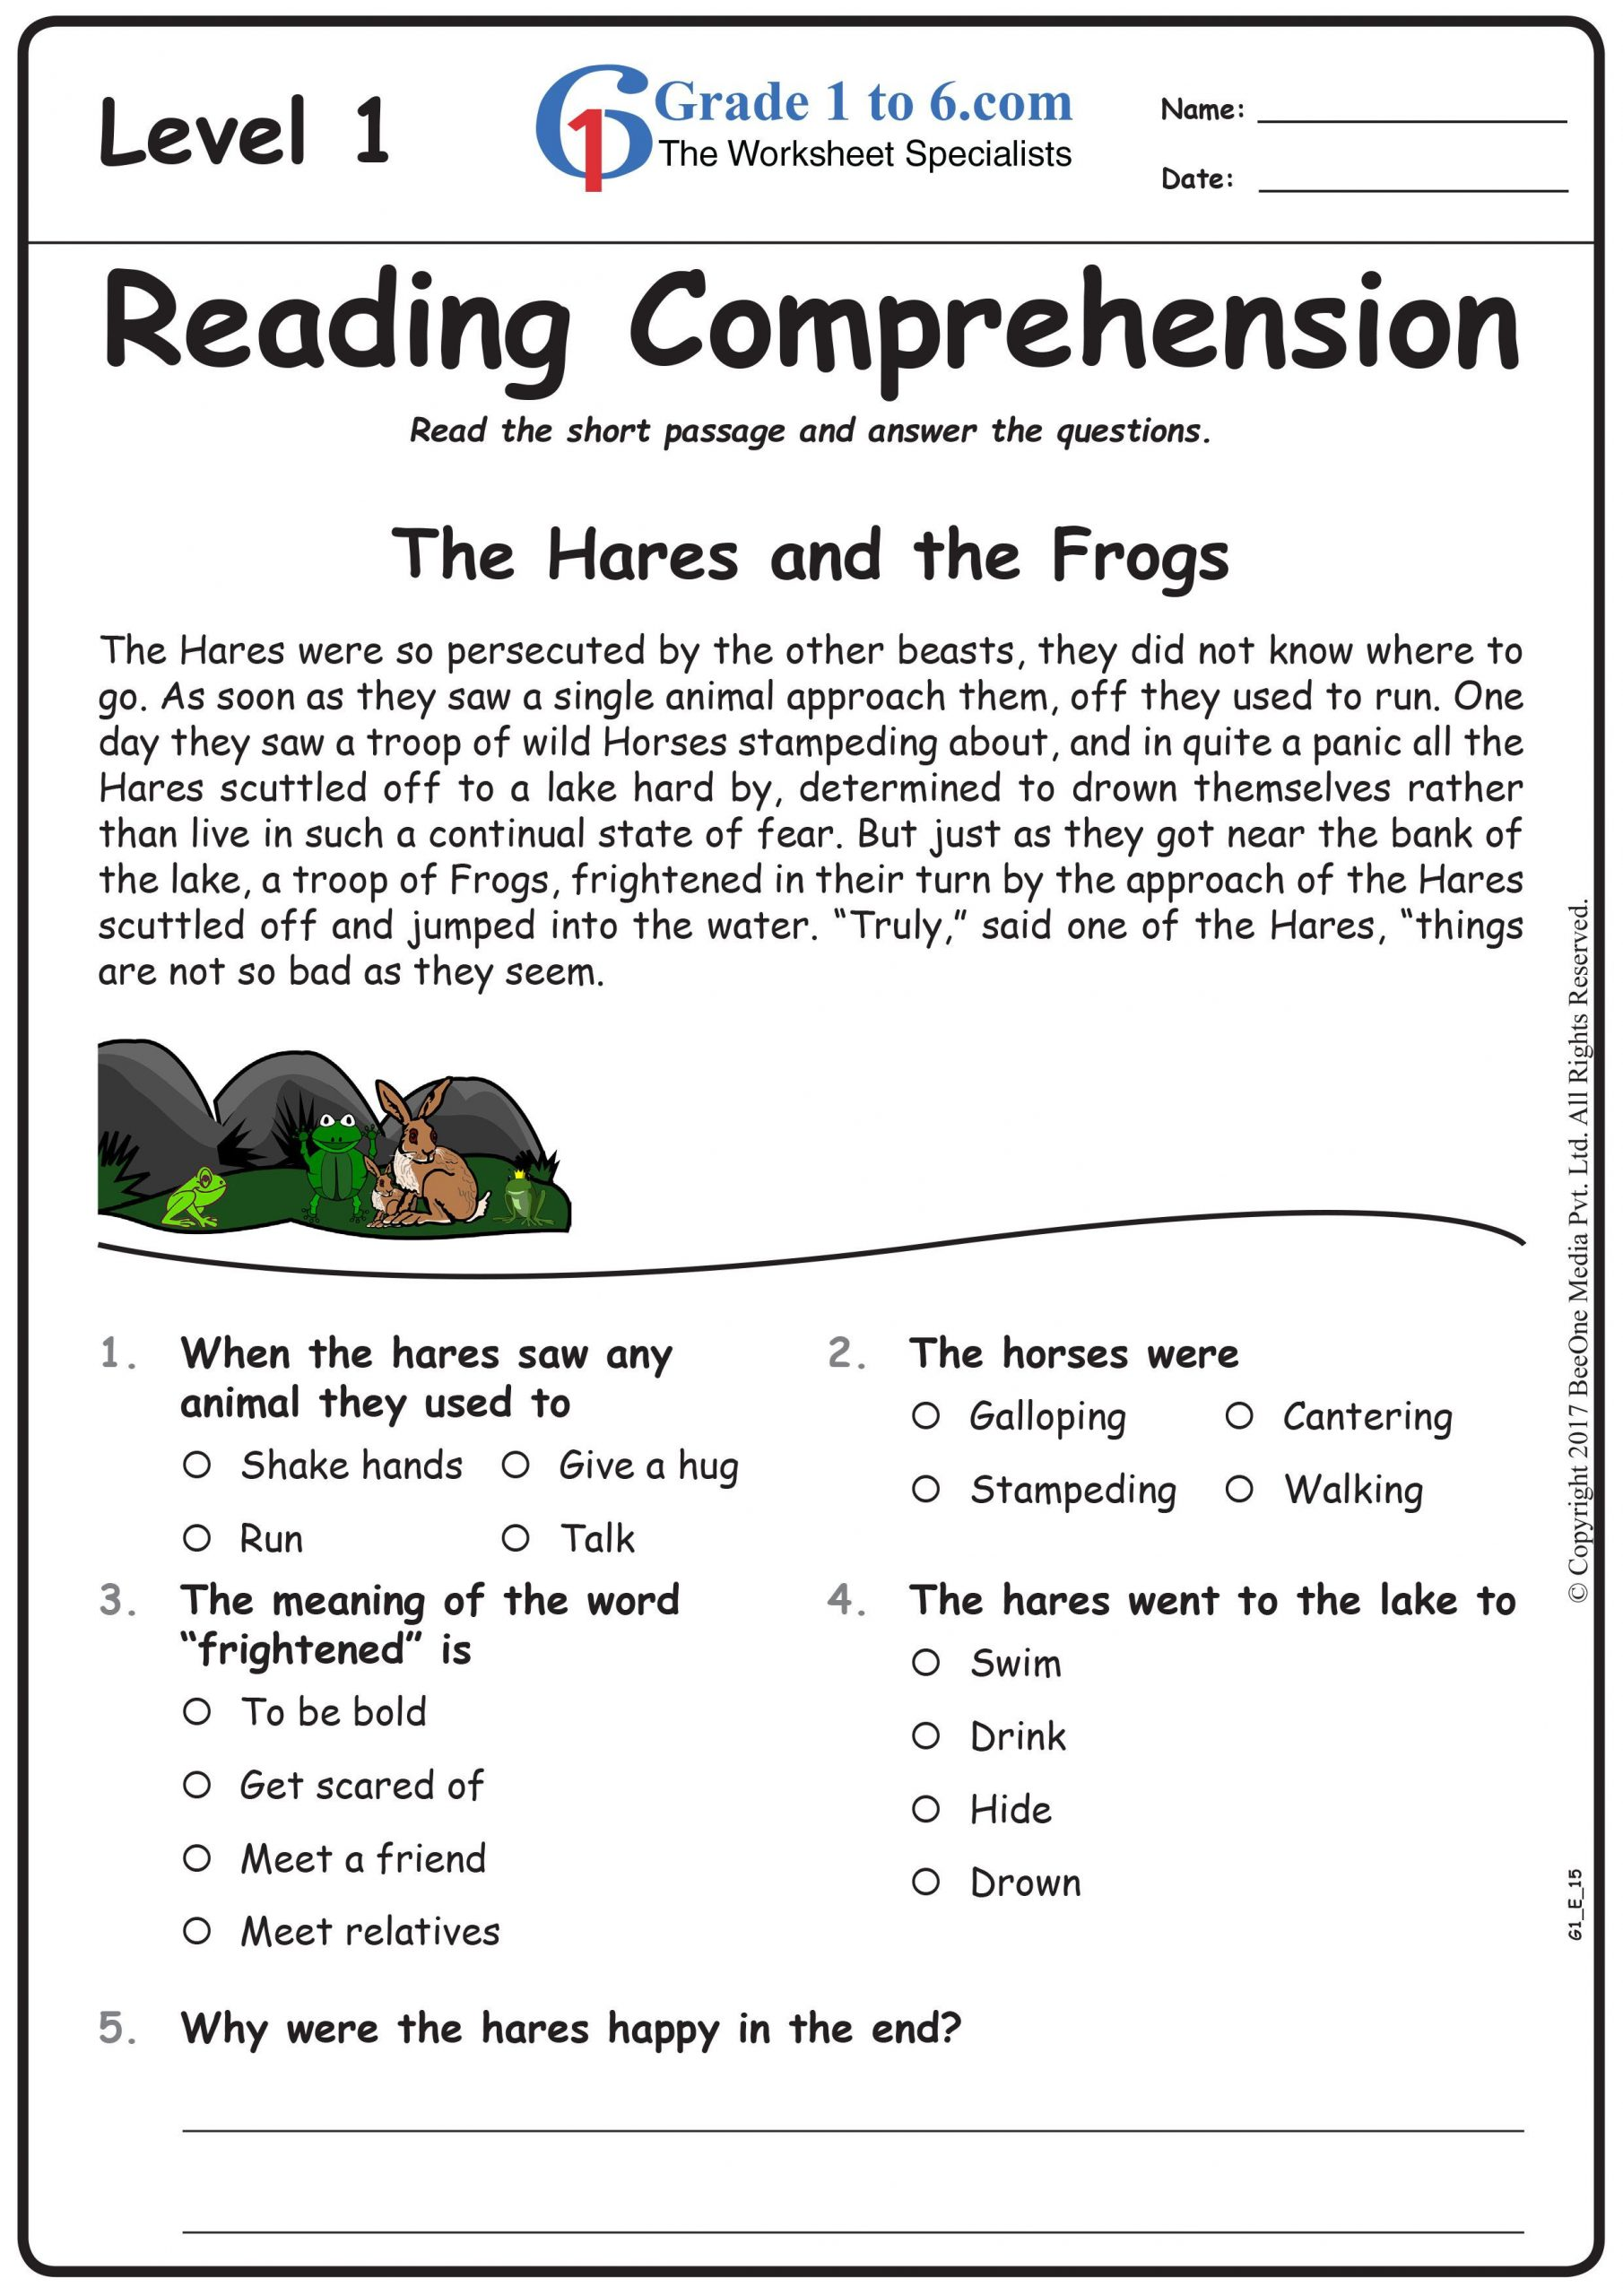 Comprehension Worksheets for Grade 6 Free Math Worksheets for Grade 1 Through Grade 6 Subscribe